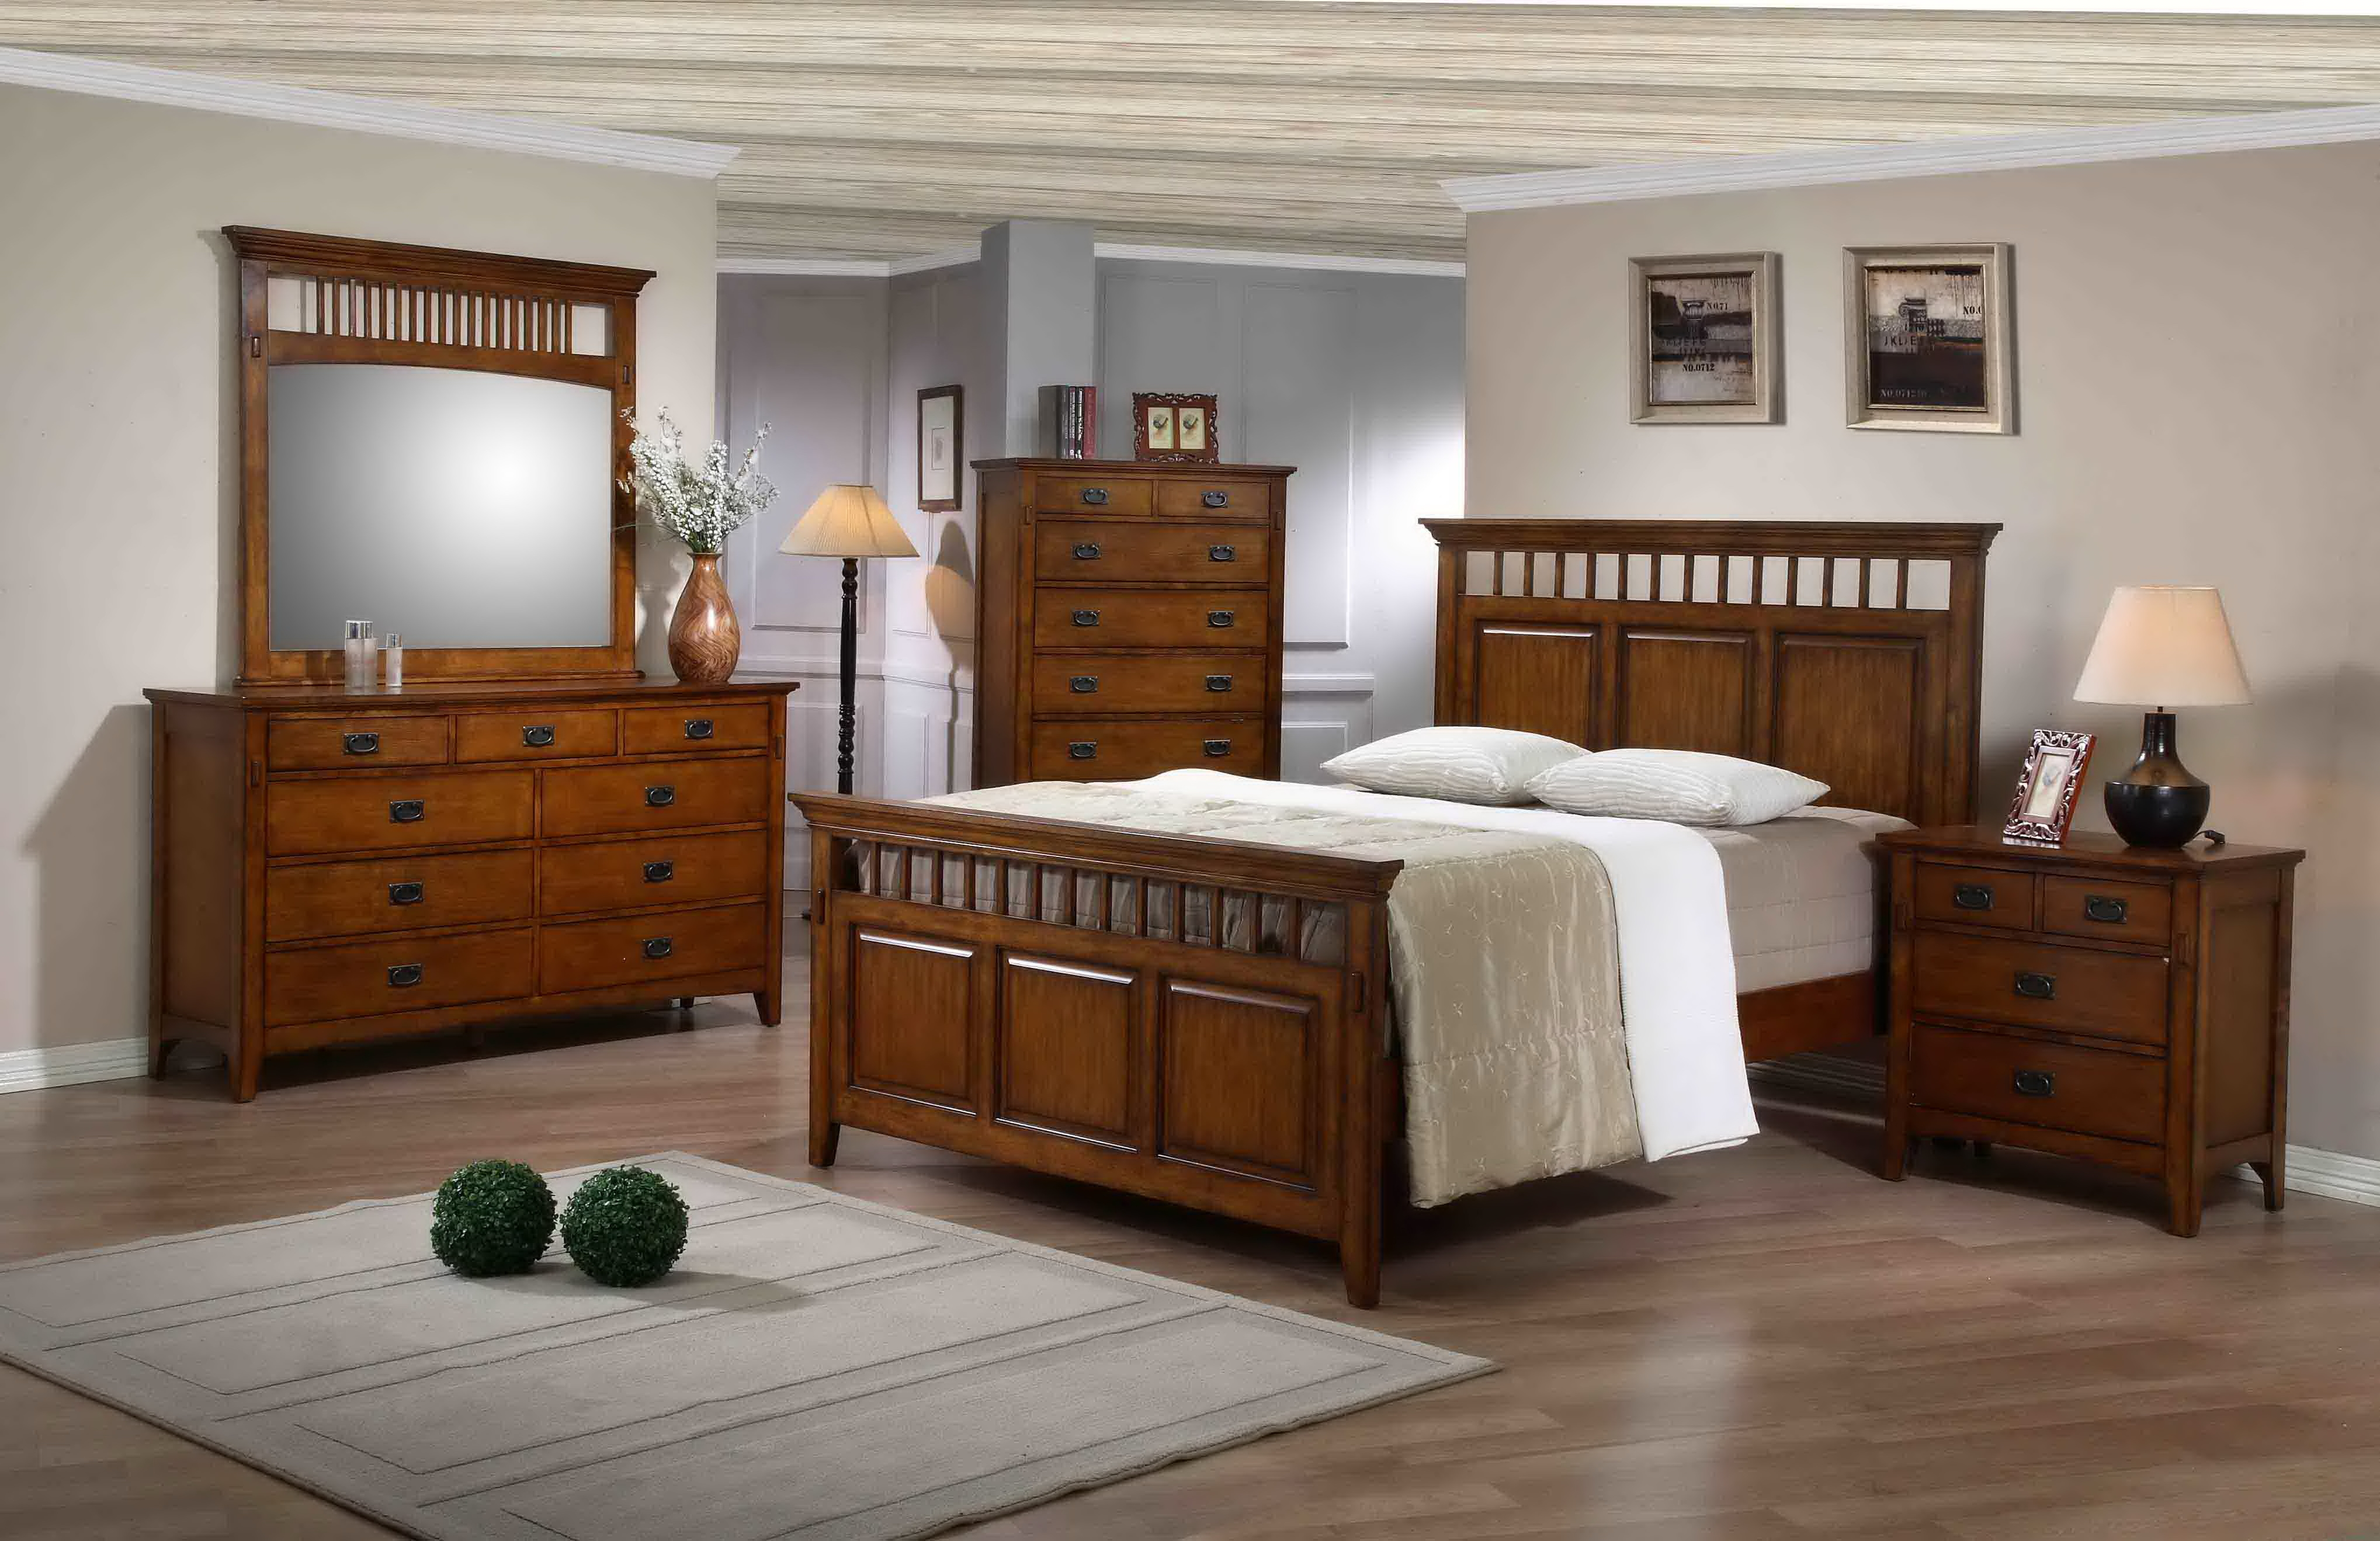 Stack furniture solutions in fife wa 98424 for Bedroom furniture 98409